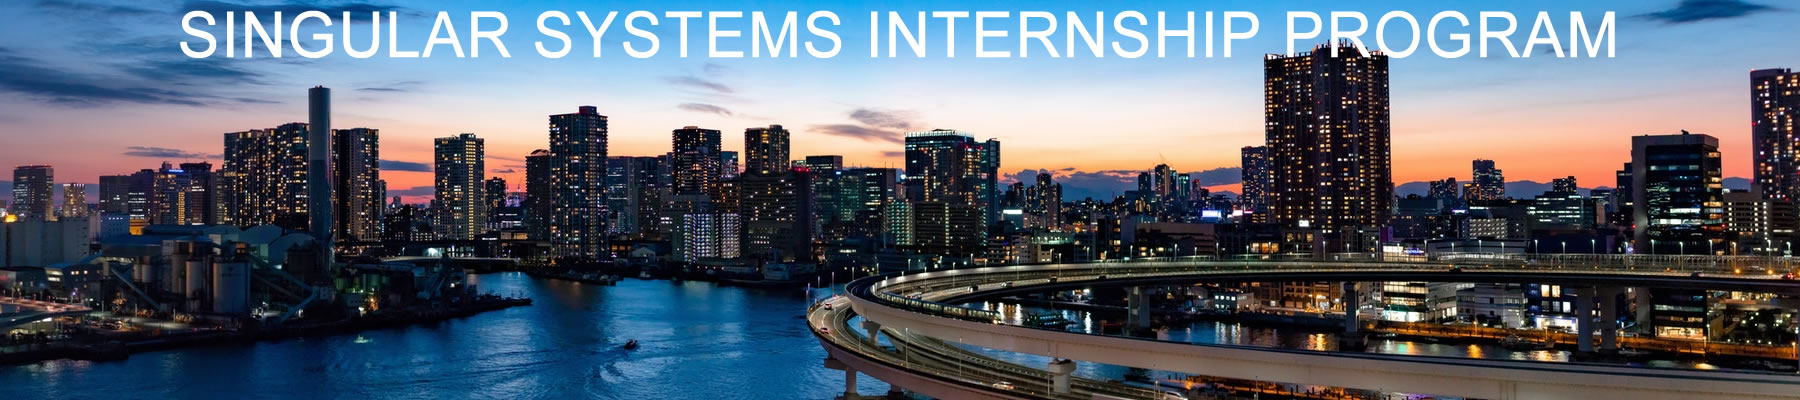 Singular Systems Internship Program - The Intern Experience